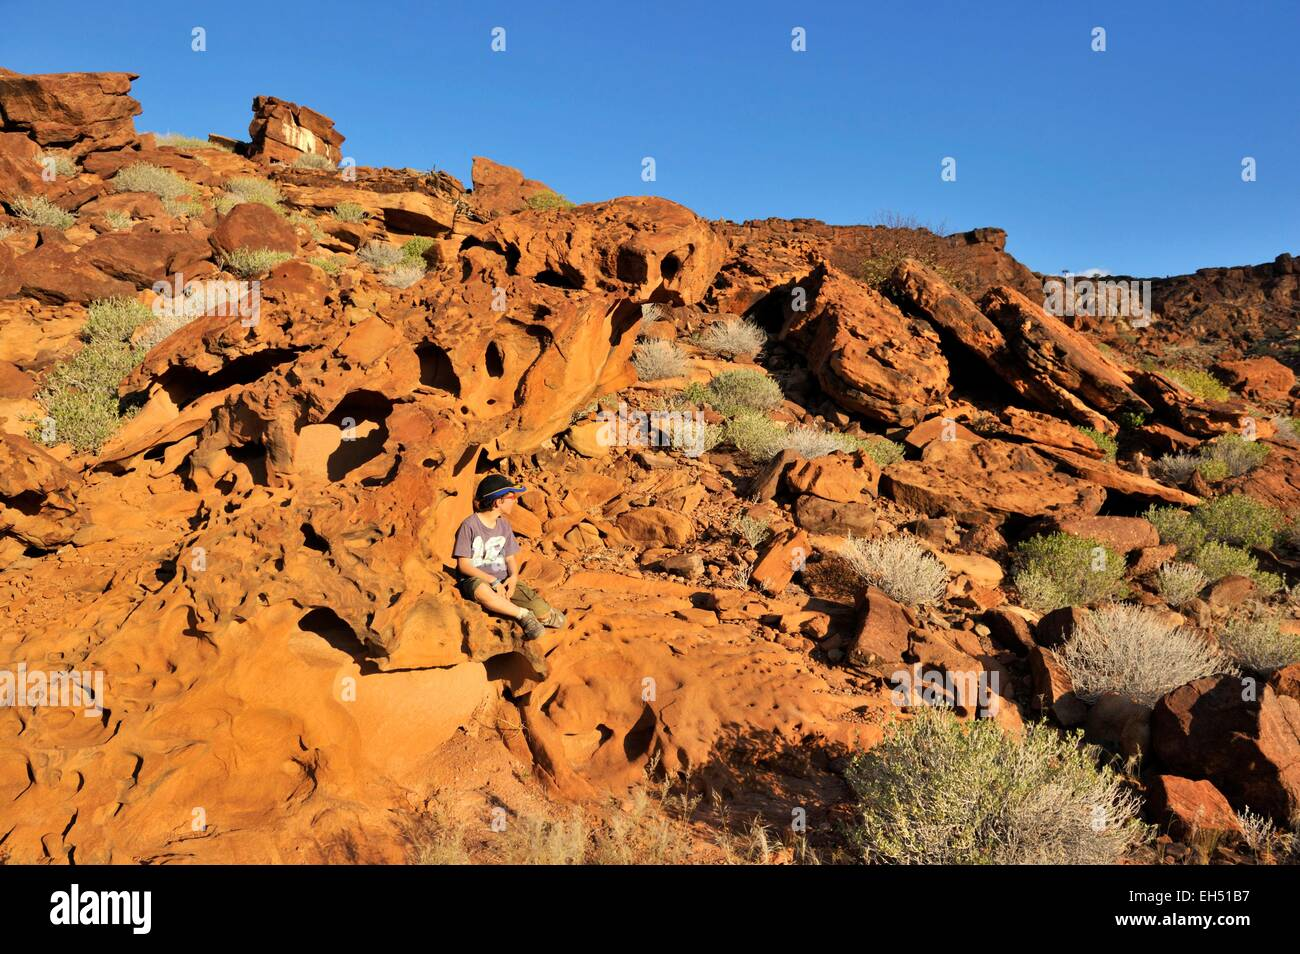 Namibia, Damaraland, Twyfeltontein, listed as World Heritage by UNESCO, rock carvings - Stock Image